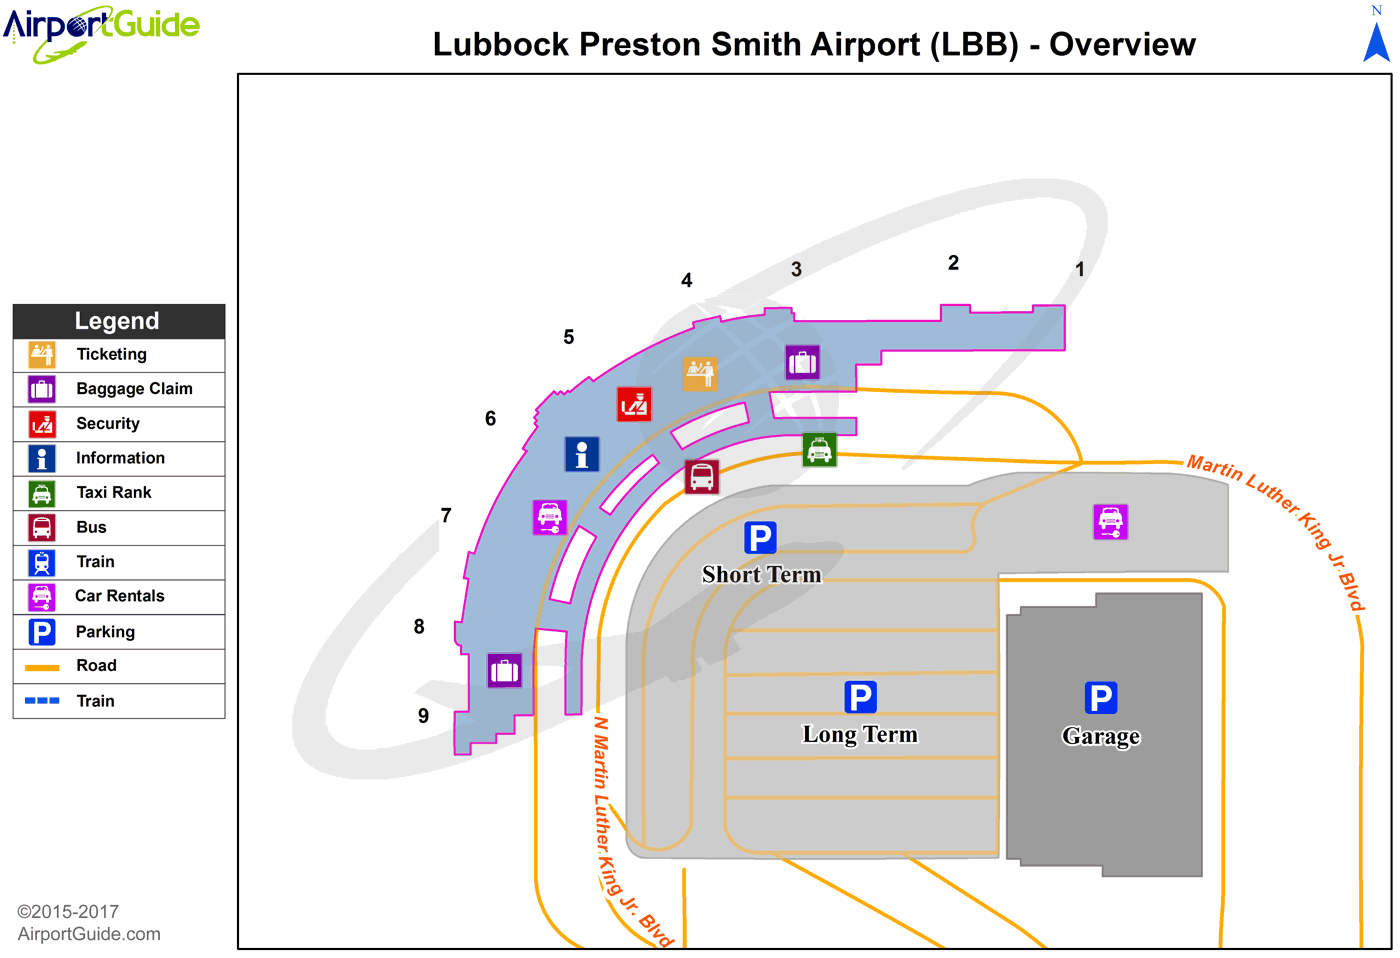 Lubbock - Lubbock Preston Smith International (LBB) Airport Terminal Map - Overview